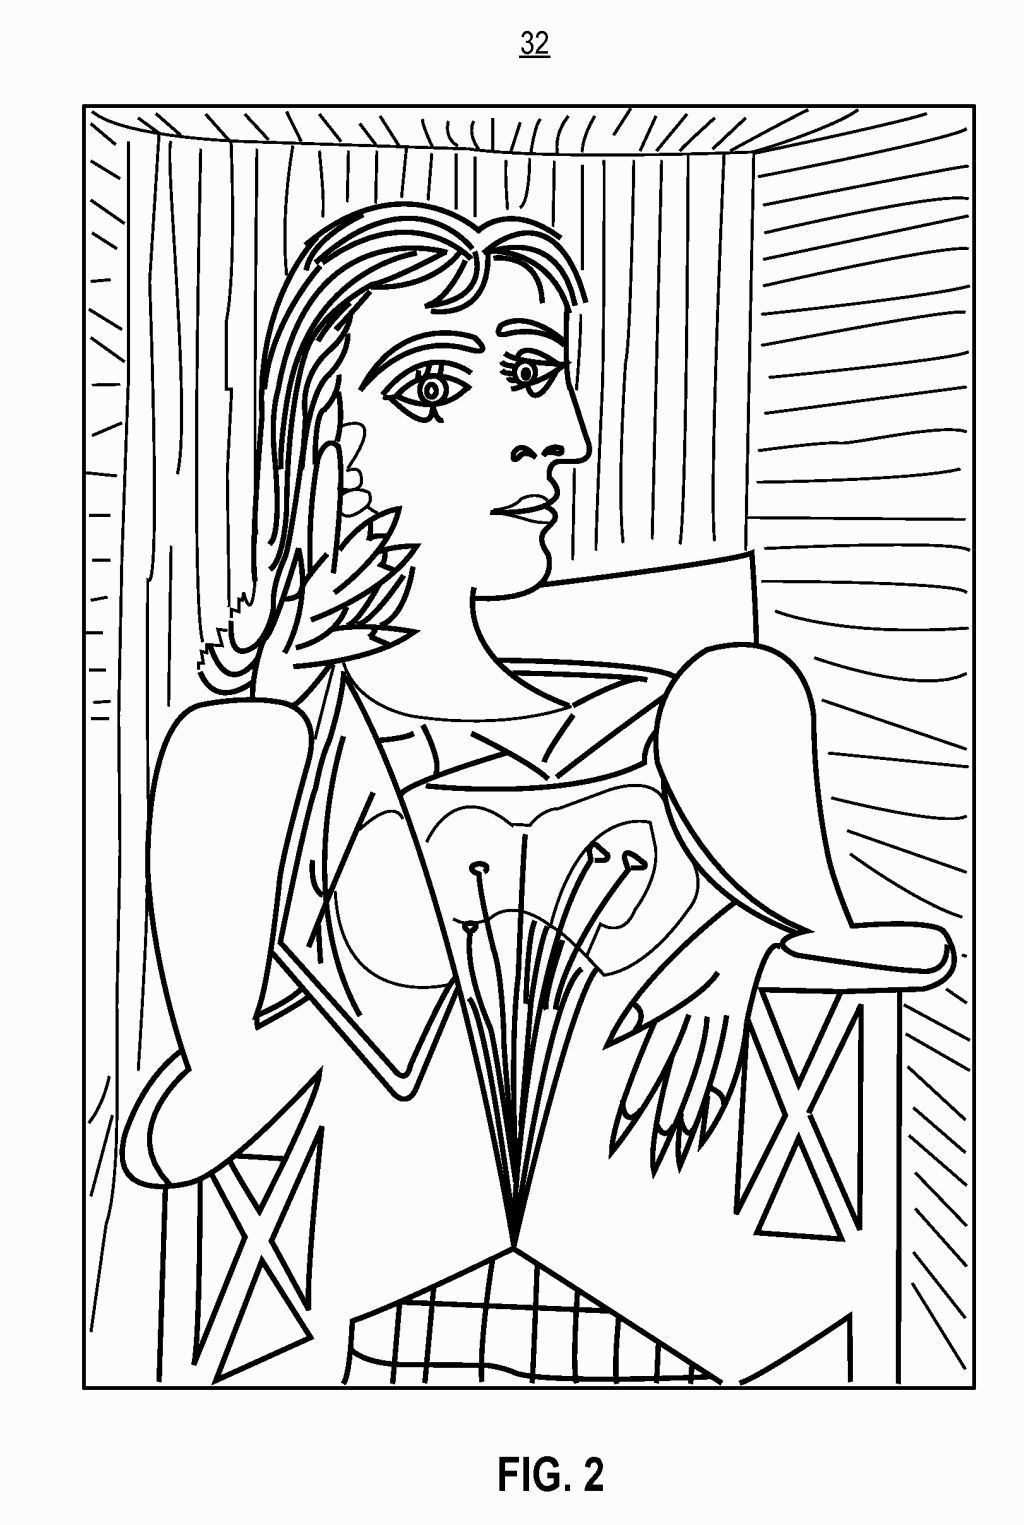 Pablo Picasso Coloring Pages Picasso Coloring Coloring Pages Printable Coloring Pages